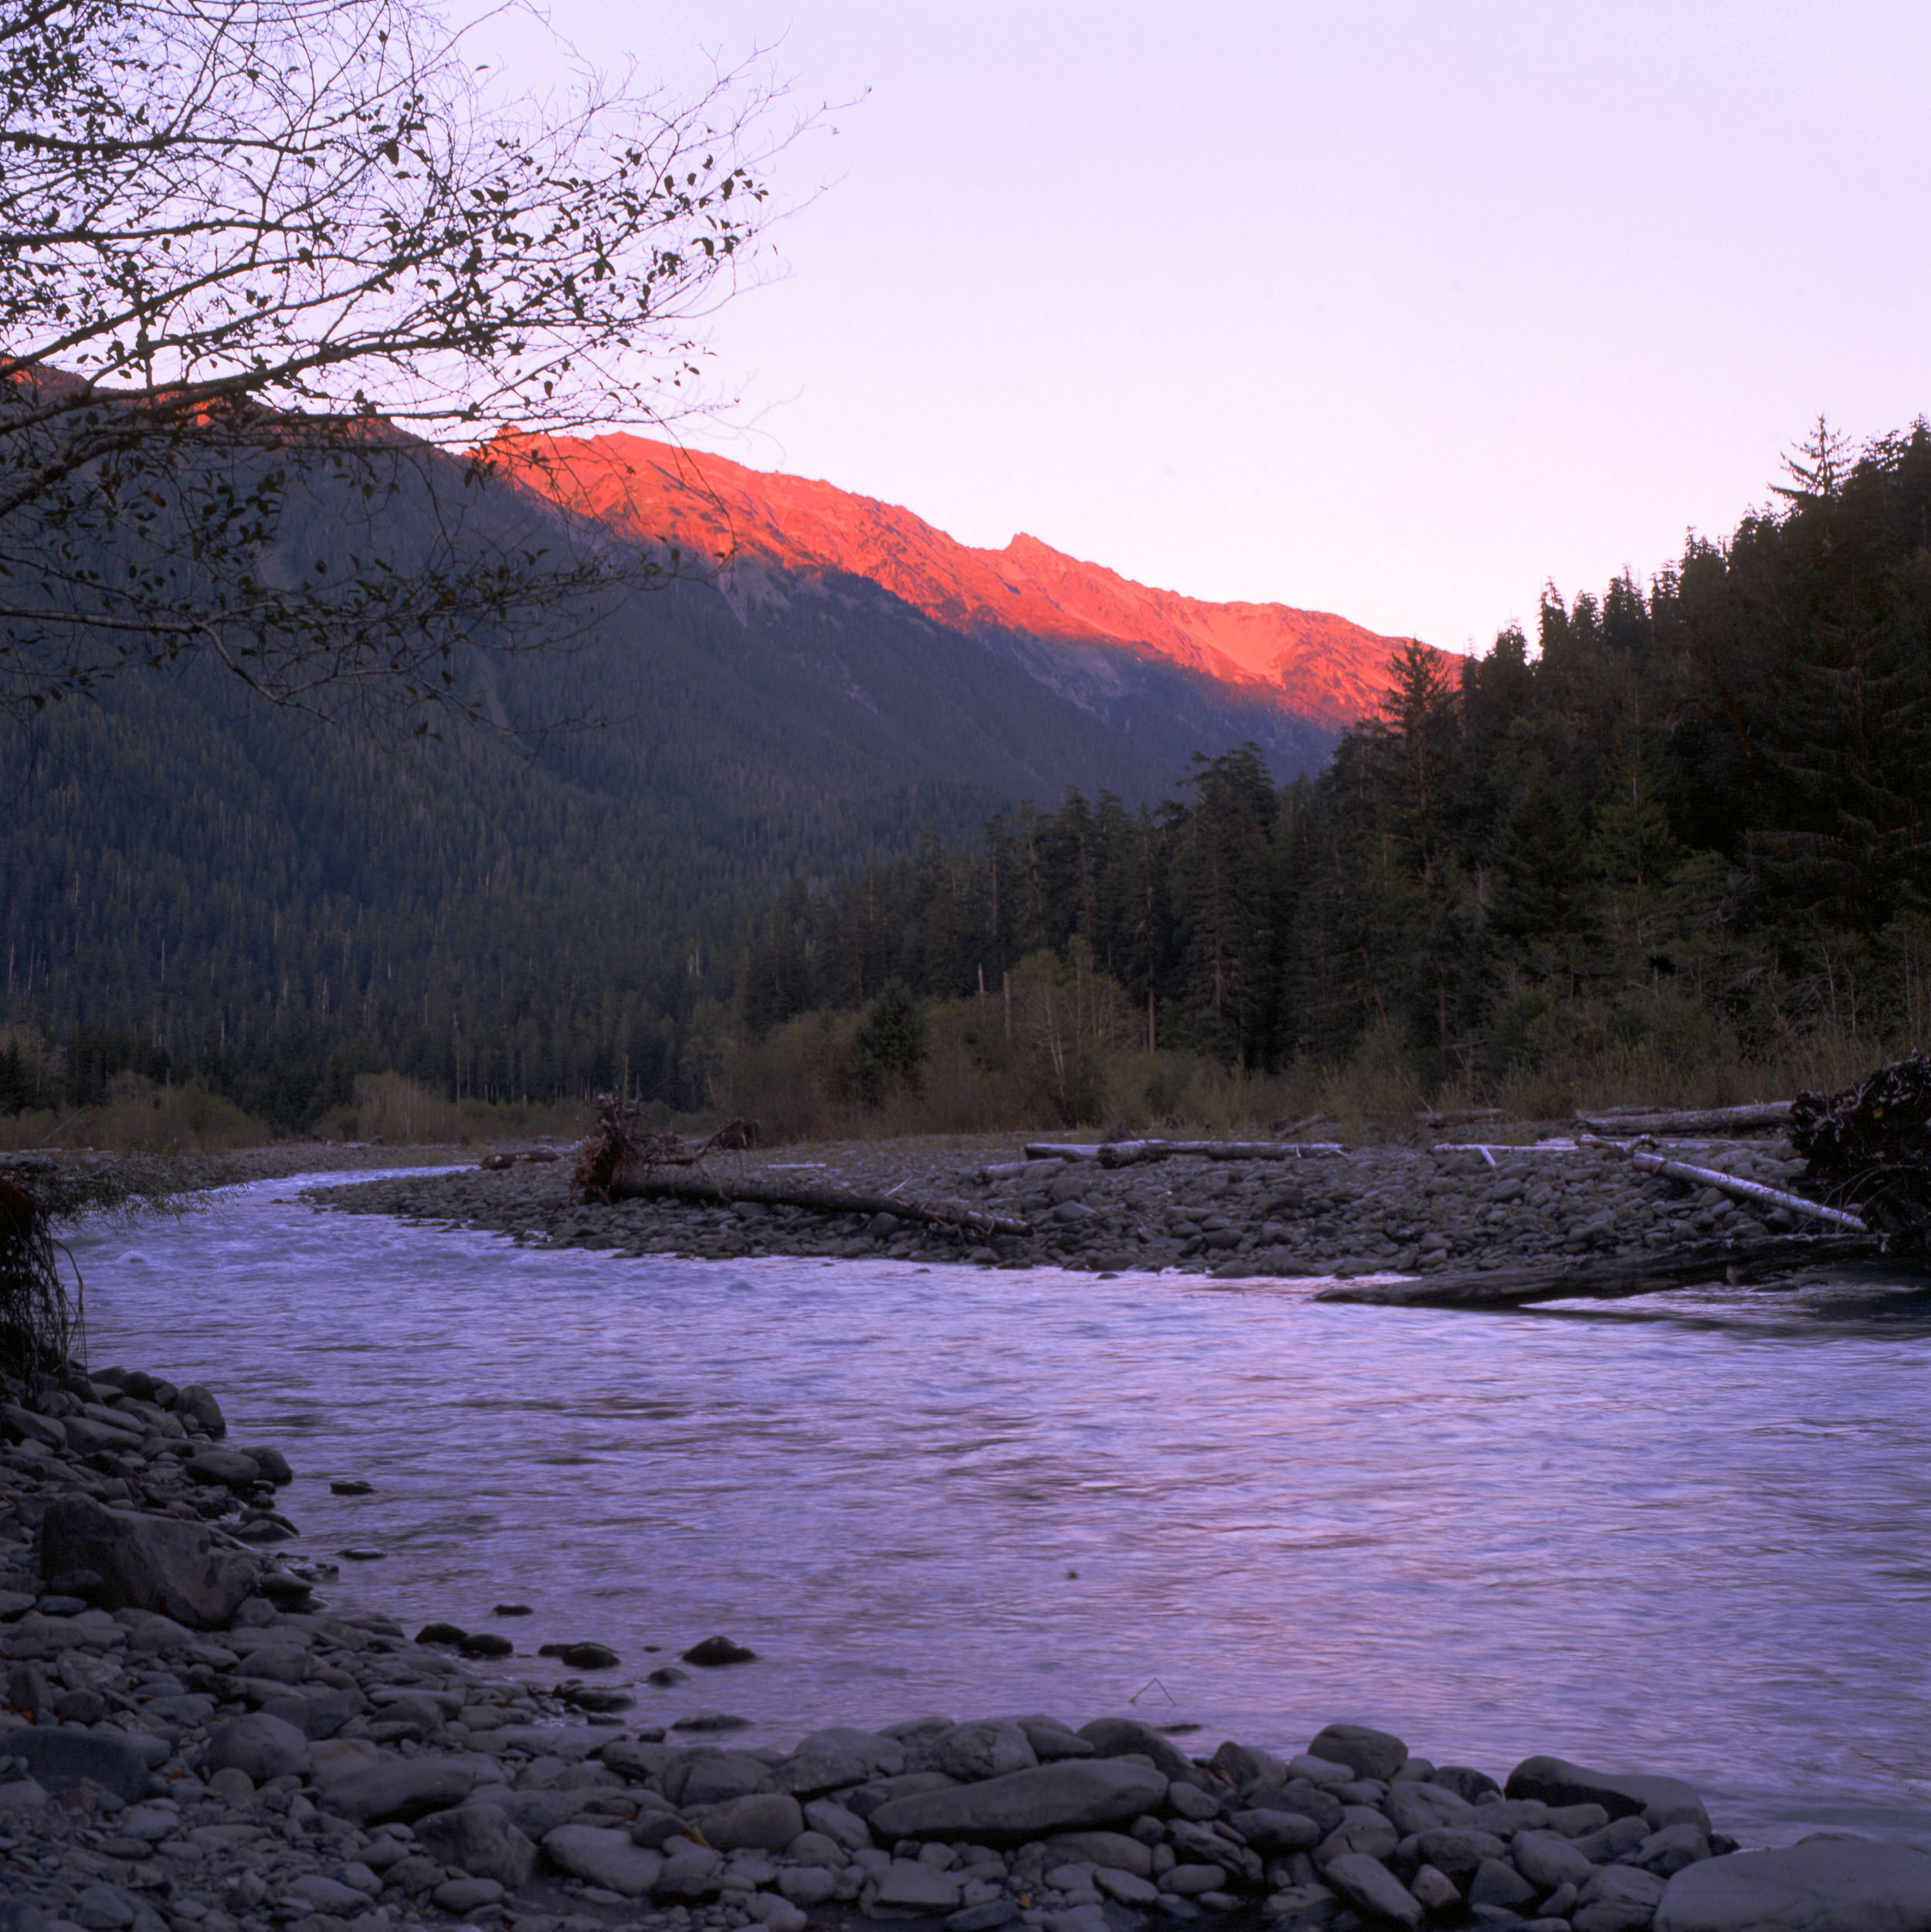 The last bits of daylight shine a pinkish hue on the top of the Hoh River Valley.  This is the view from our campsite at Lewis Meadows